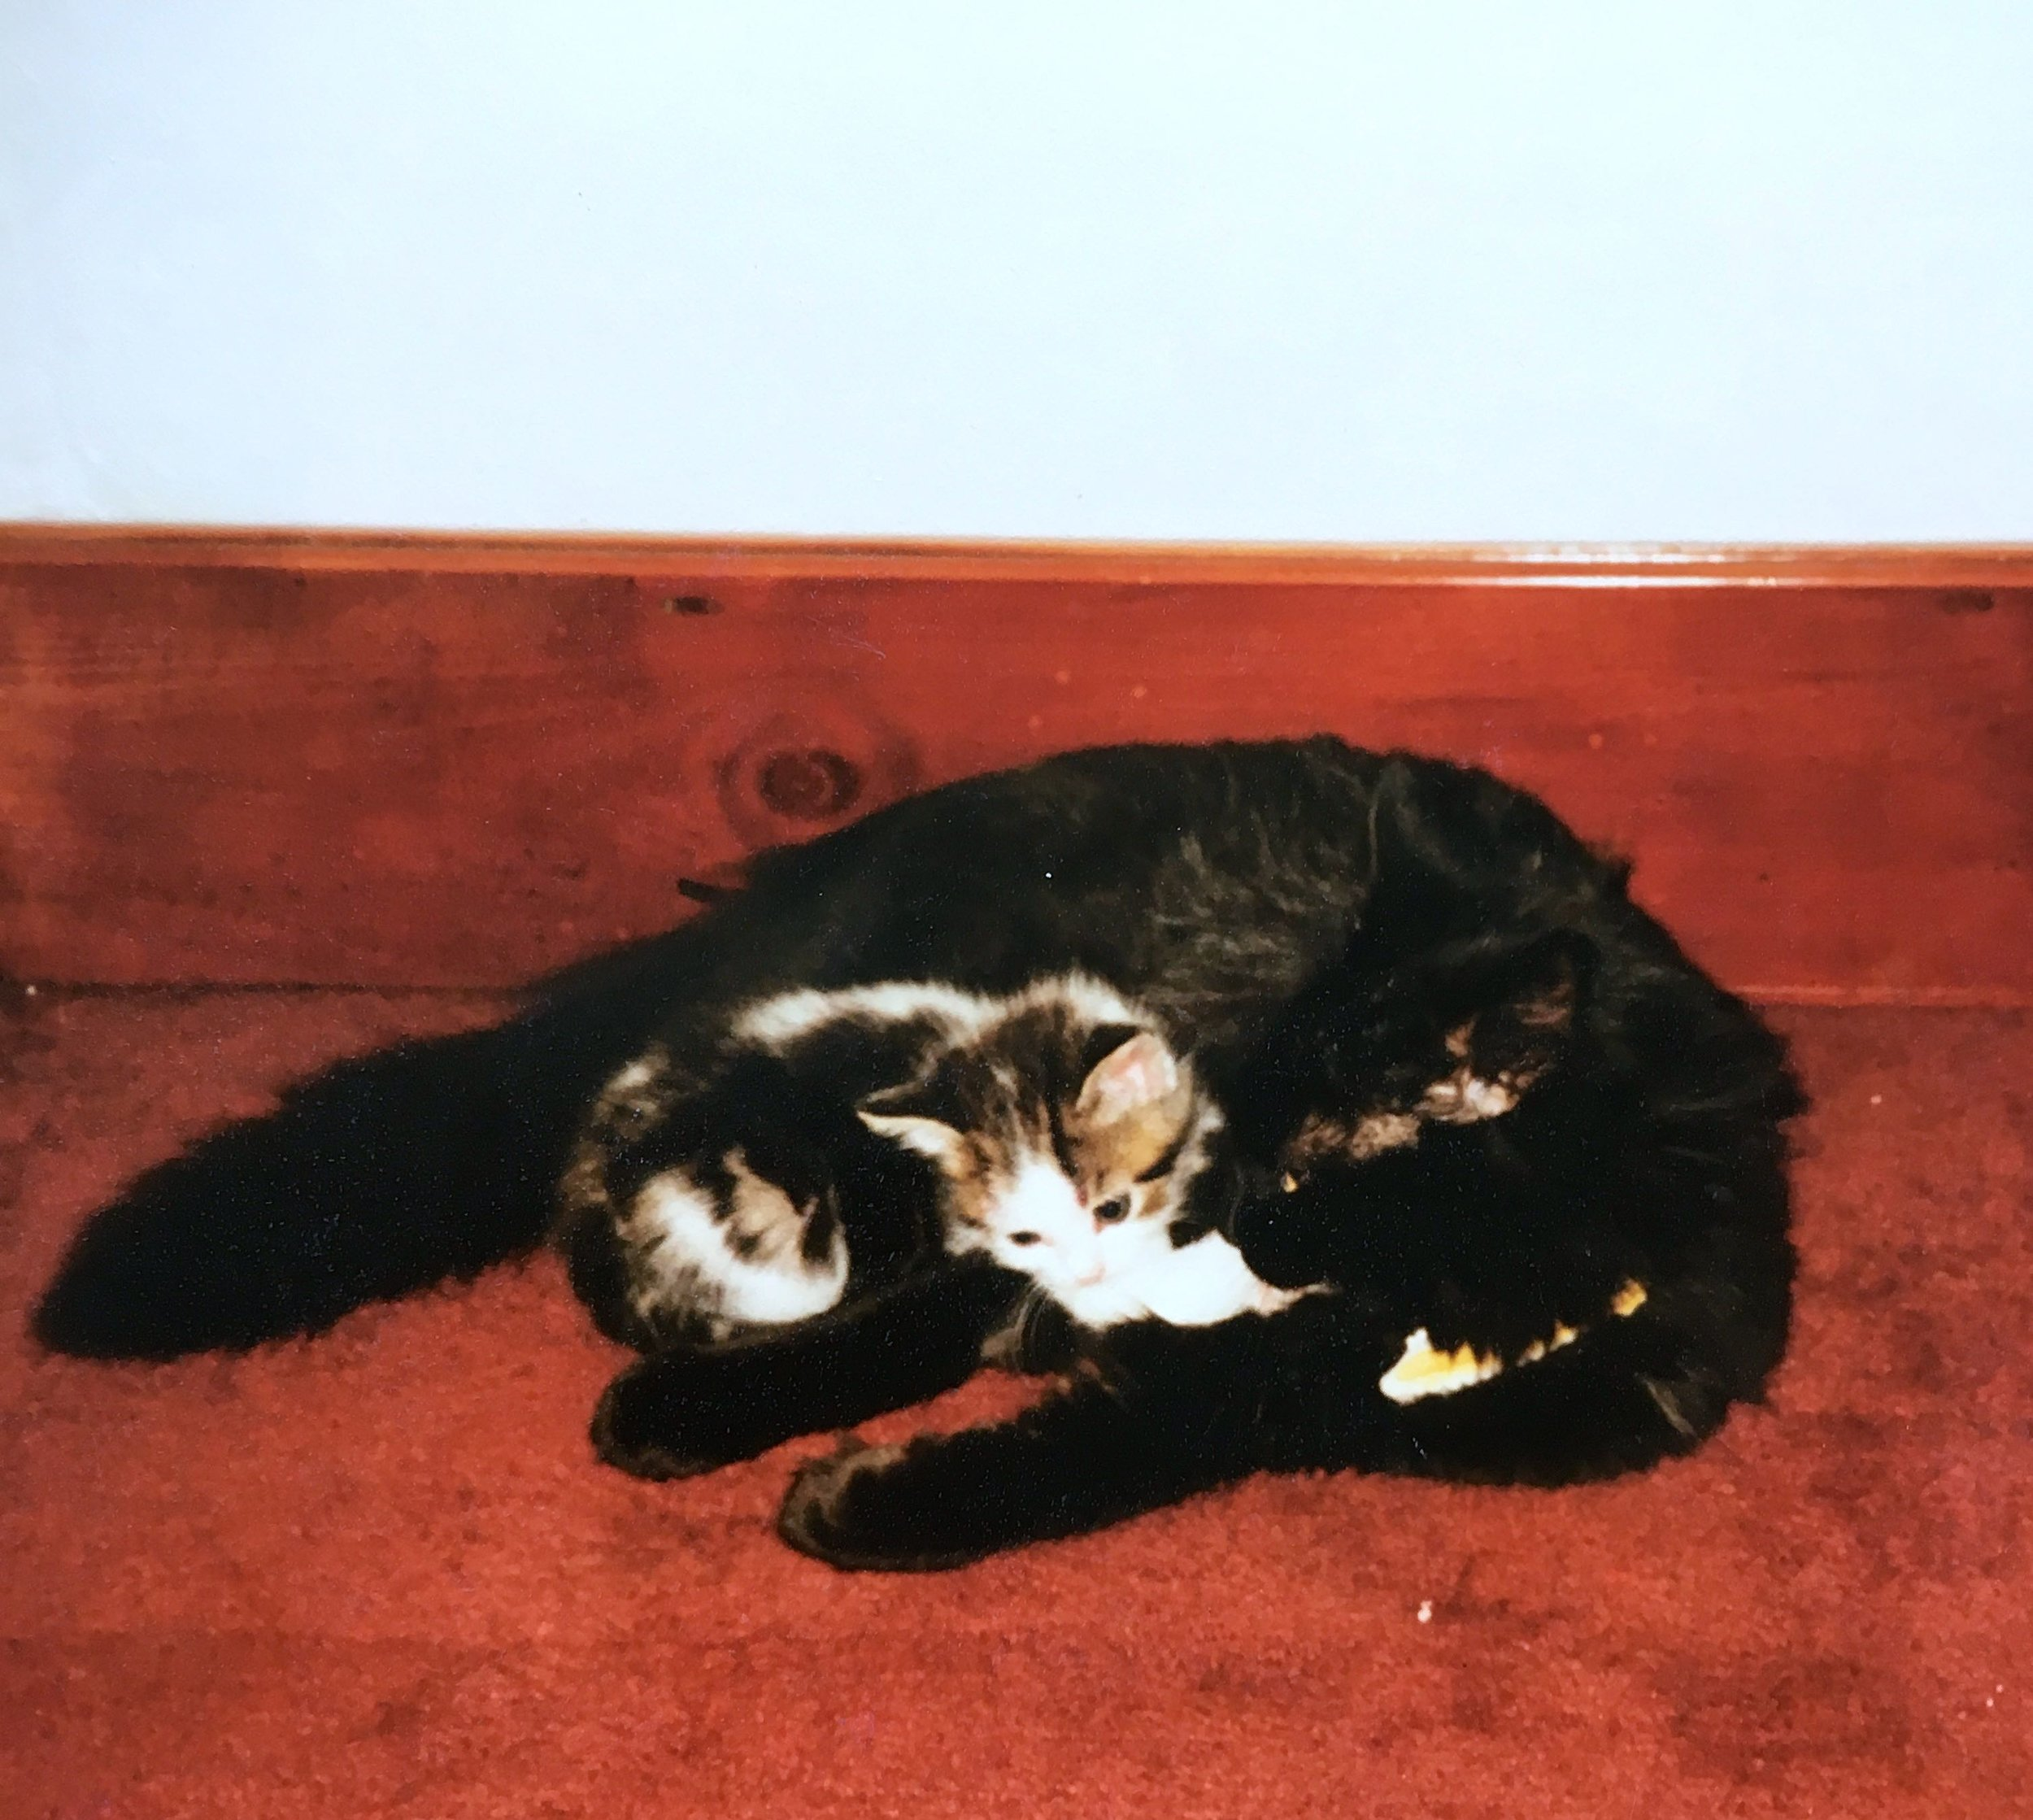 SMALL CAT #2: TESSA (SNUGGLING WITH HER DYLAN)